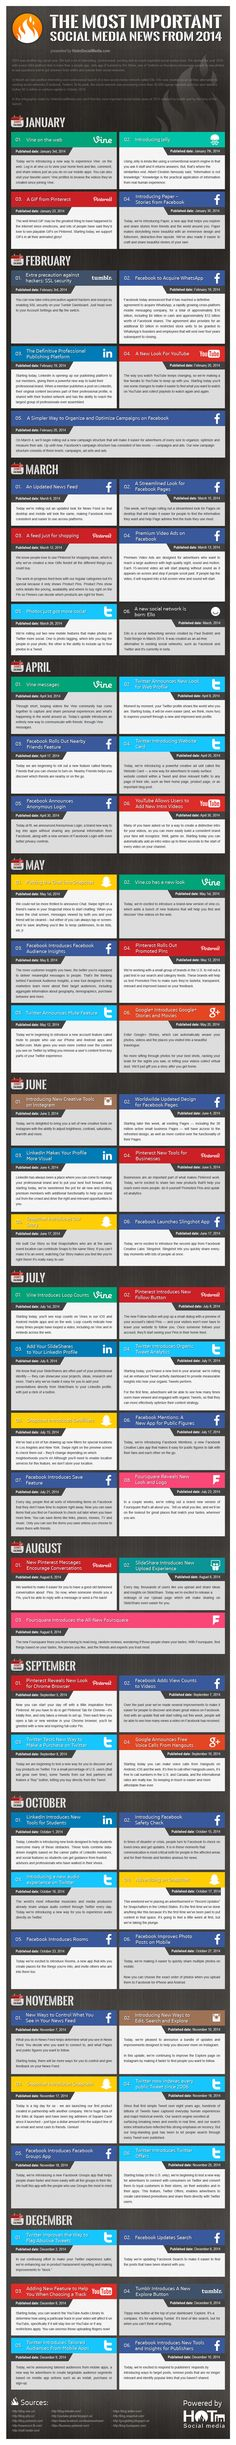 The Most Important Social Media News From 2014 #infographic